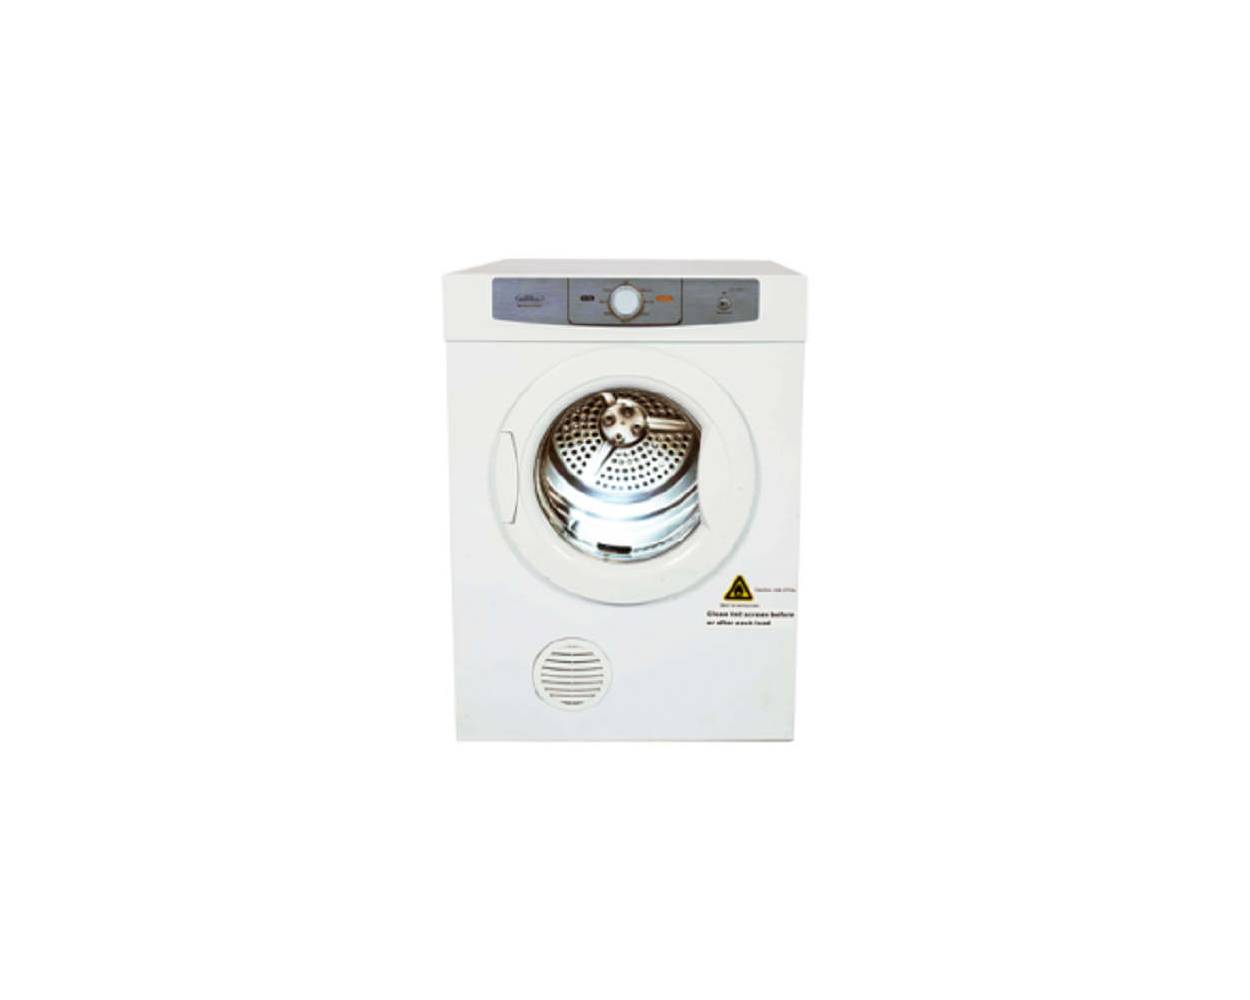 Haier Thermocool 6KG Dryer HDY-D60